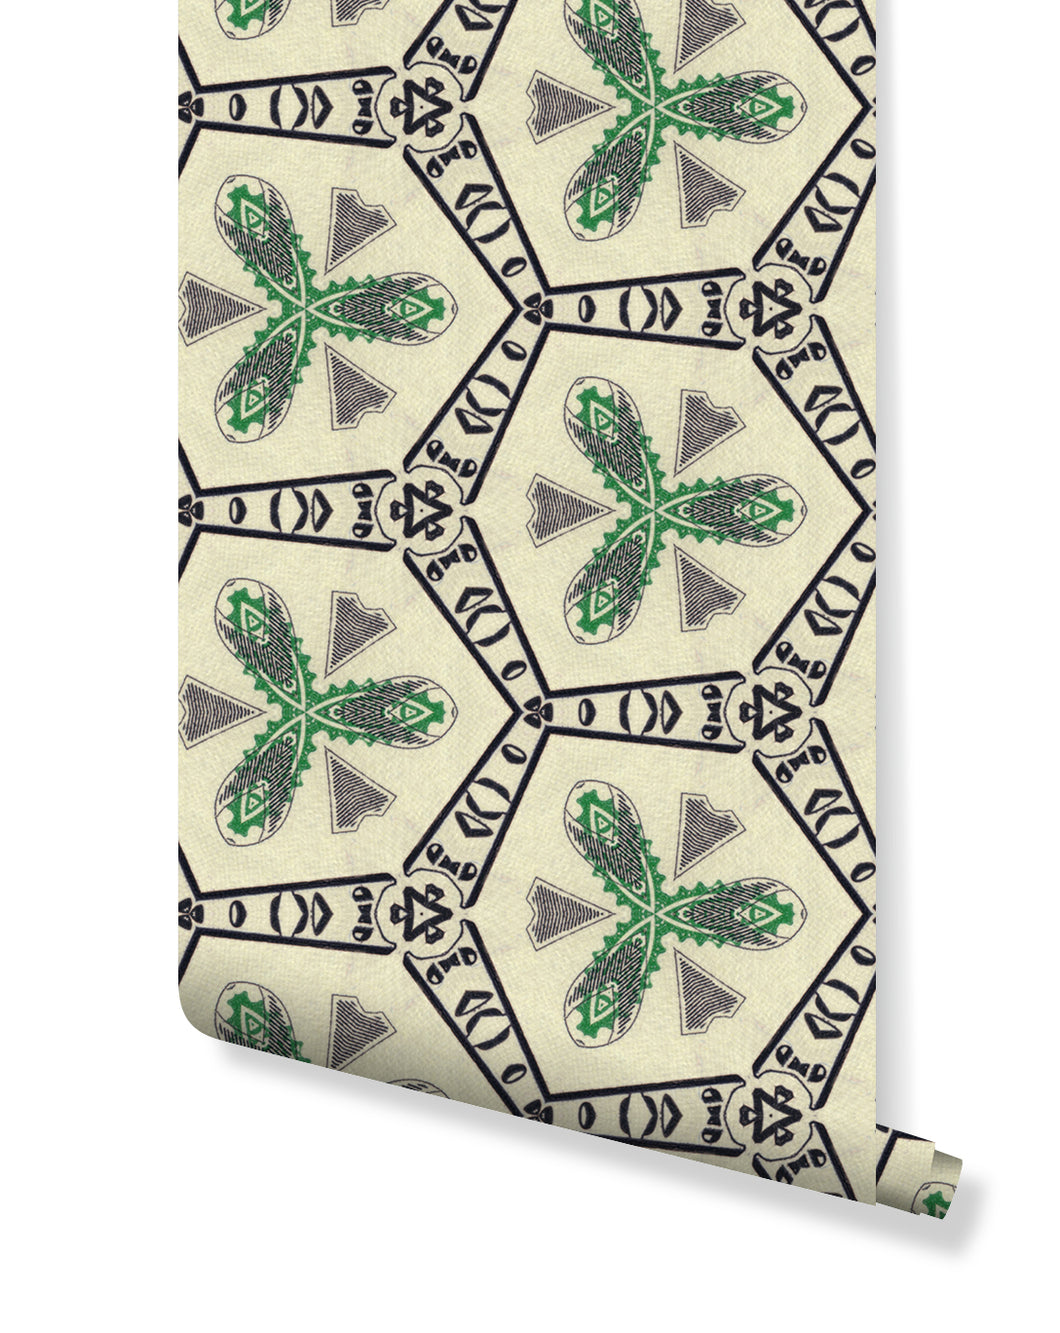 Self adhesive removable green wallpaper with dollar bill banknote watermark design, great for home decor interior, money wall